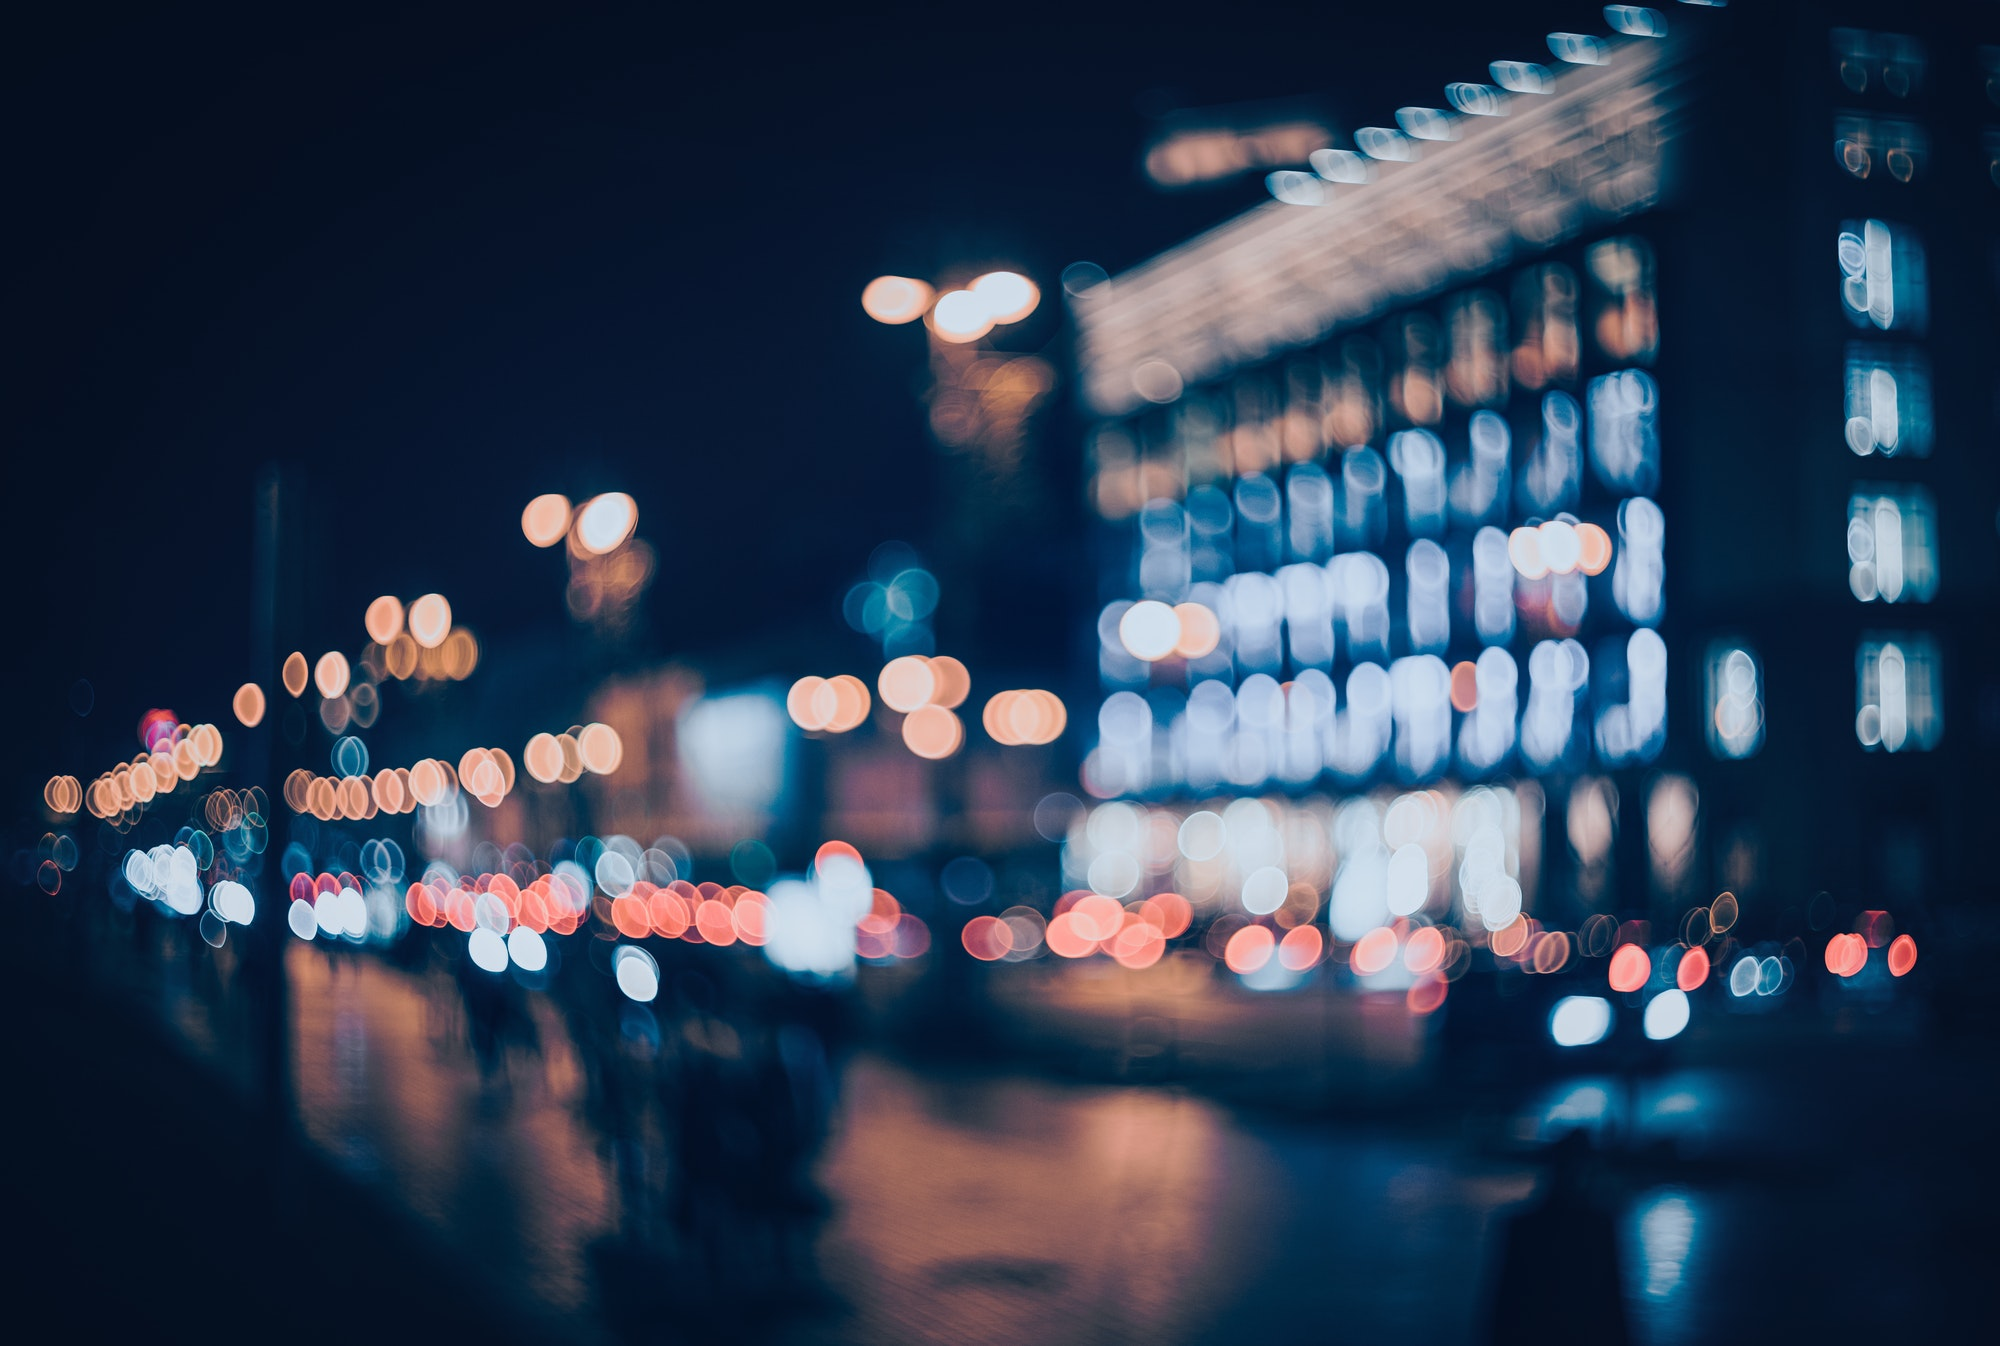 Blurred city at night. Bokeh